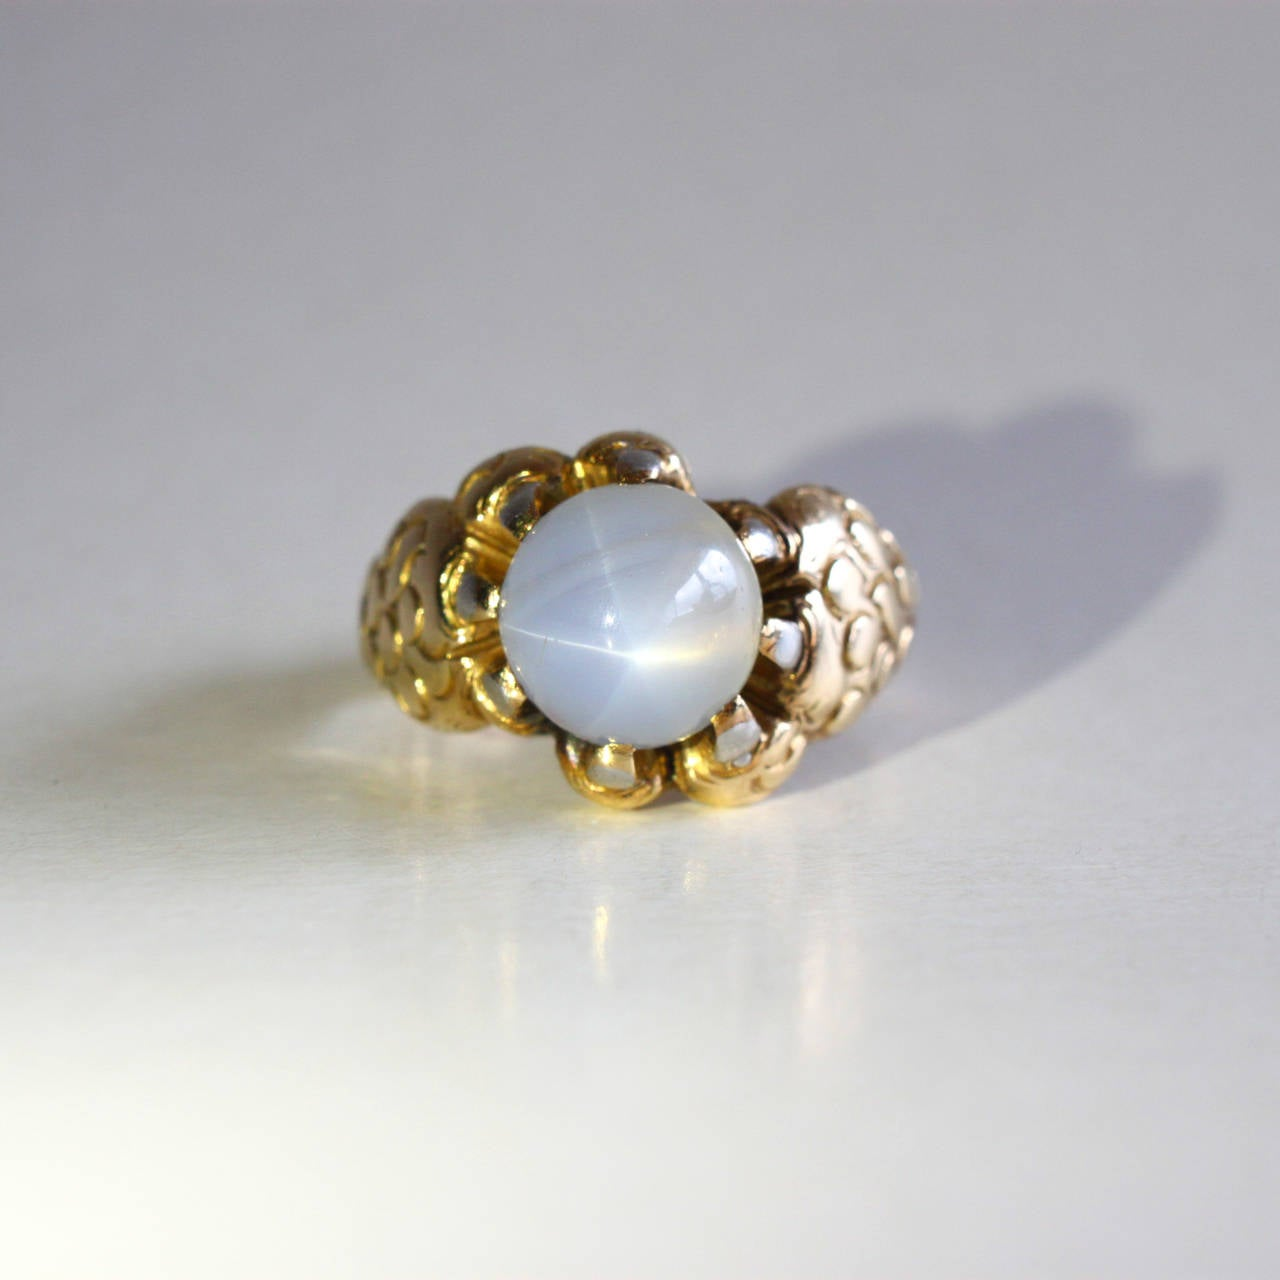 Gothic Revival Star Sapphire Gold Claw Ring For Sale